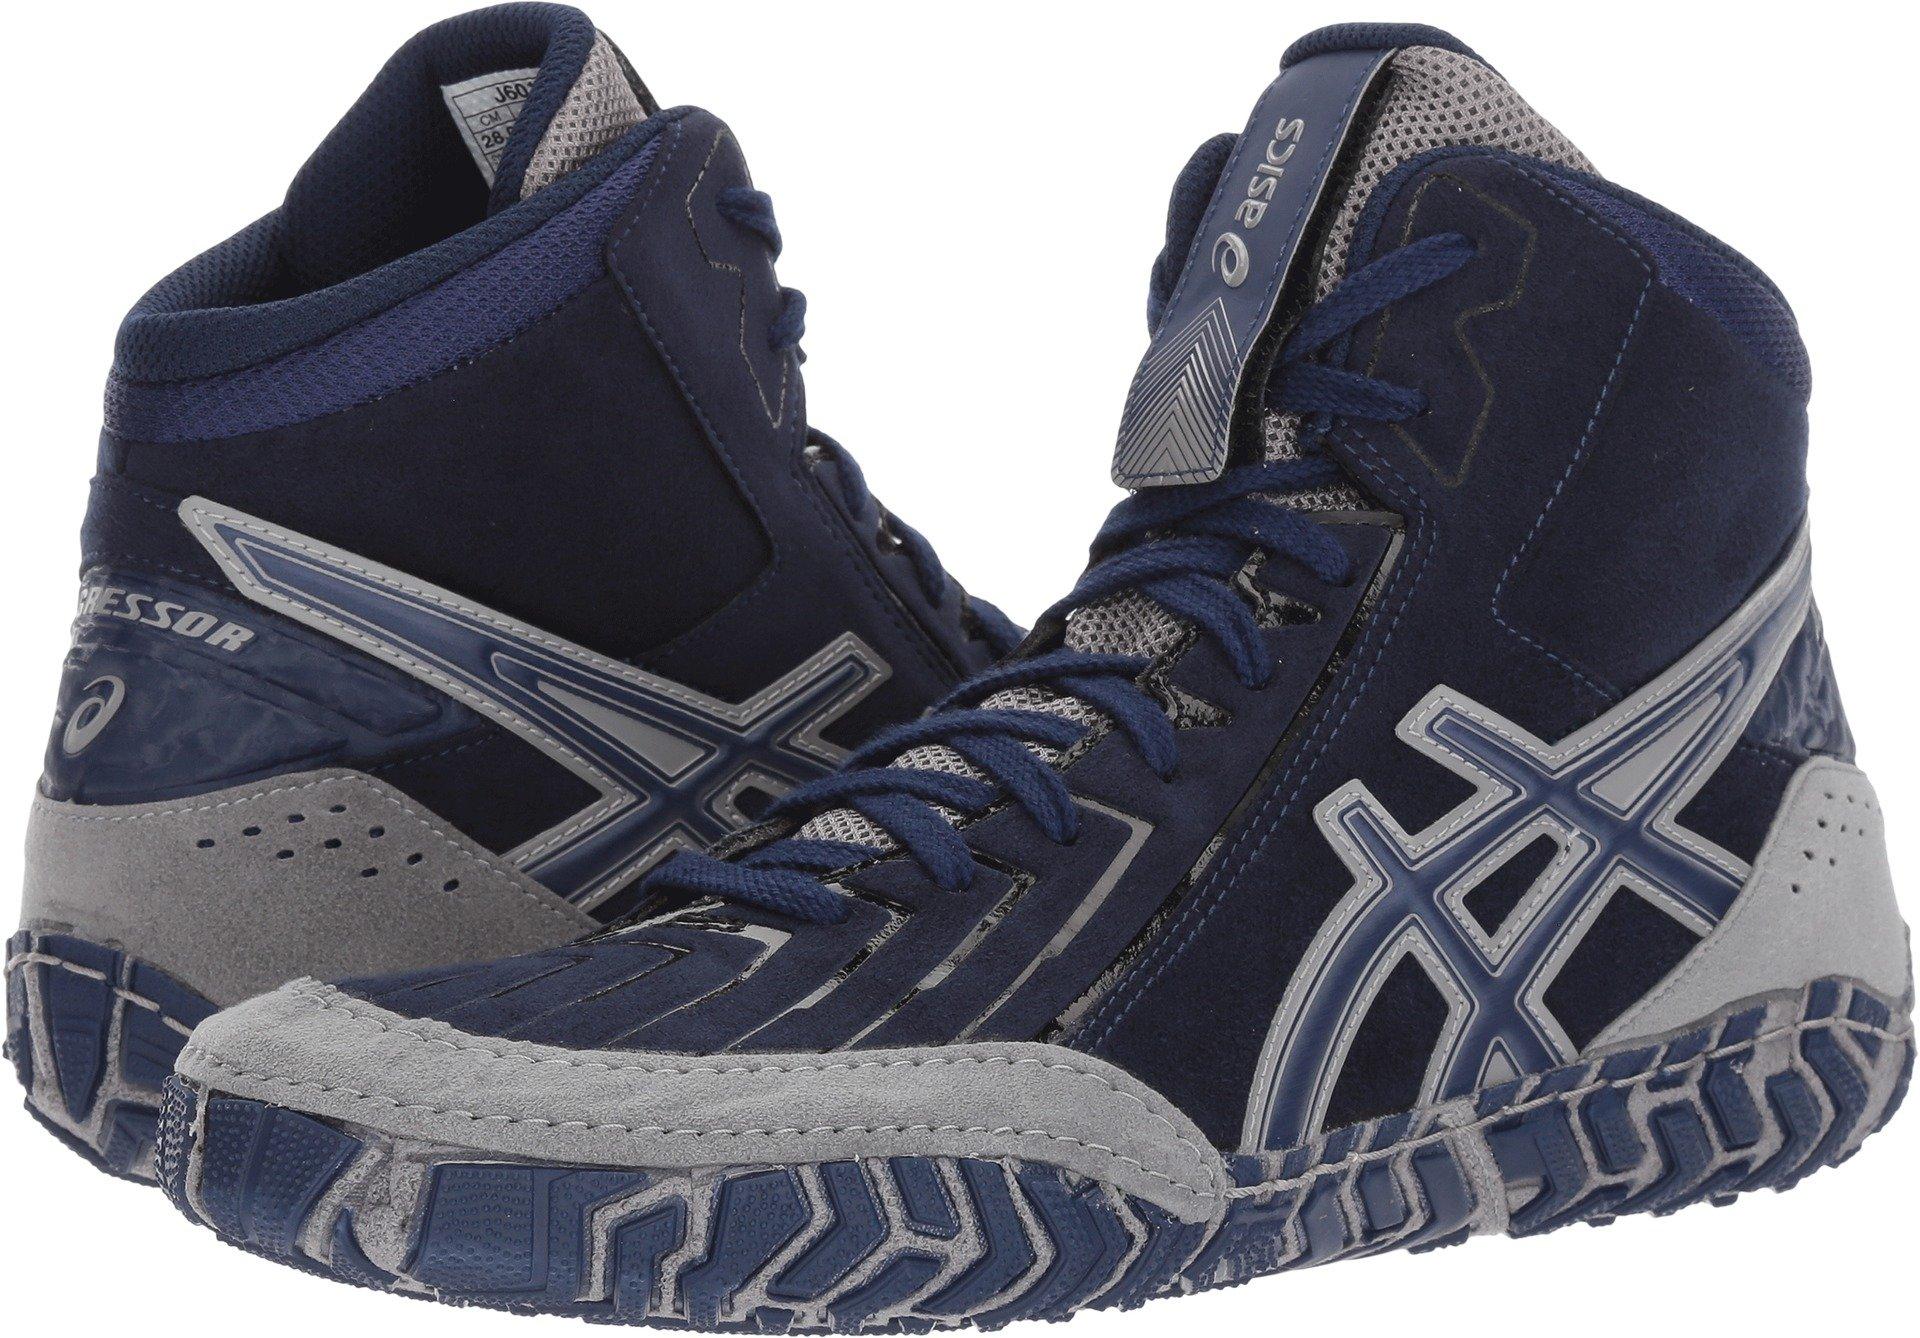 ASICS Men's Aggressor 3 Wrestling-Shoes, Indigo Blue/Indigo Blue/Aluminum, 9.5 Medium US by ASICS